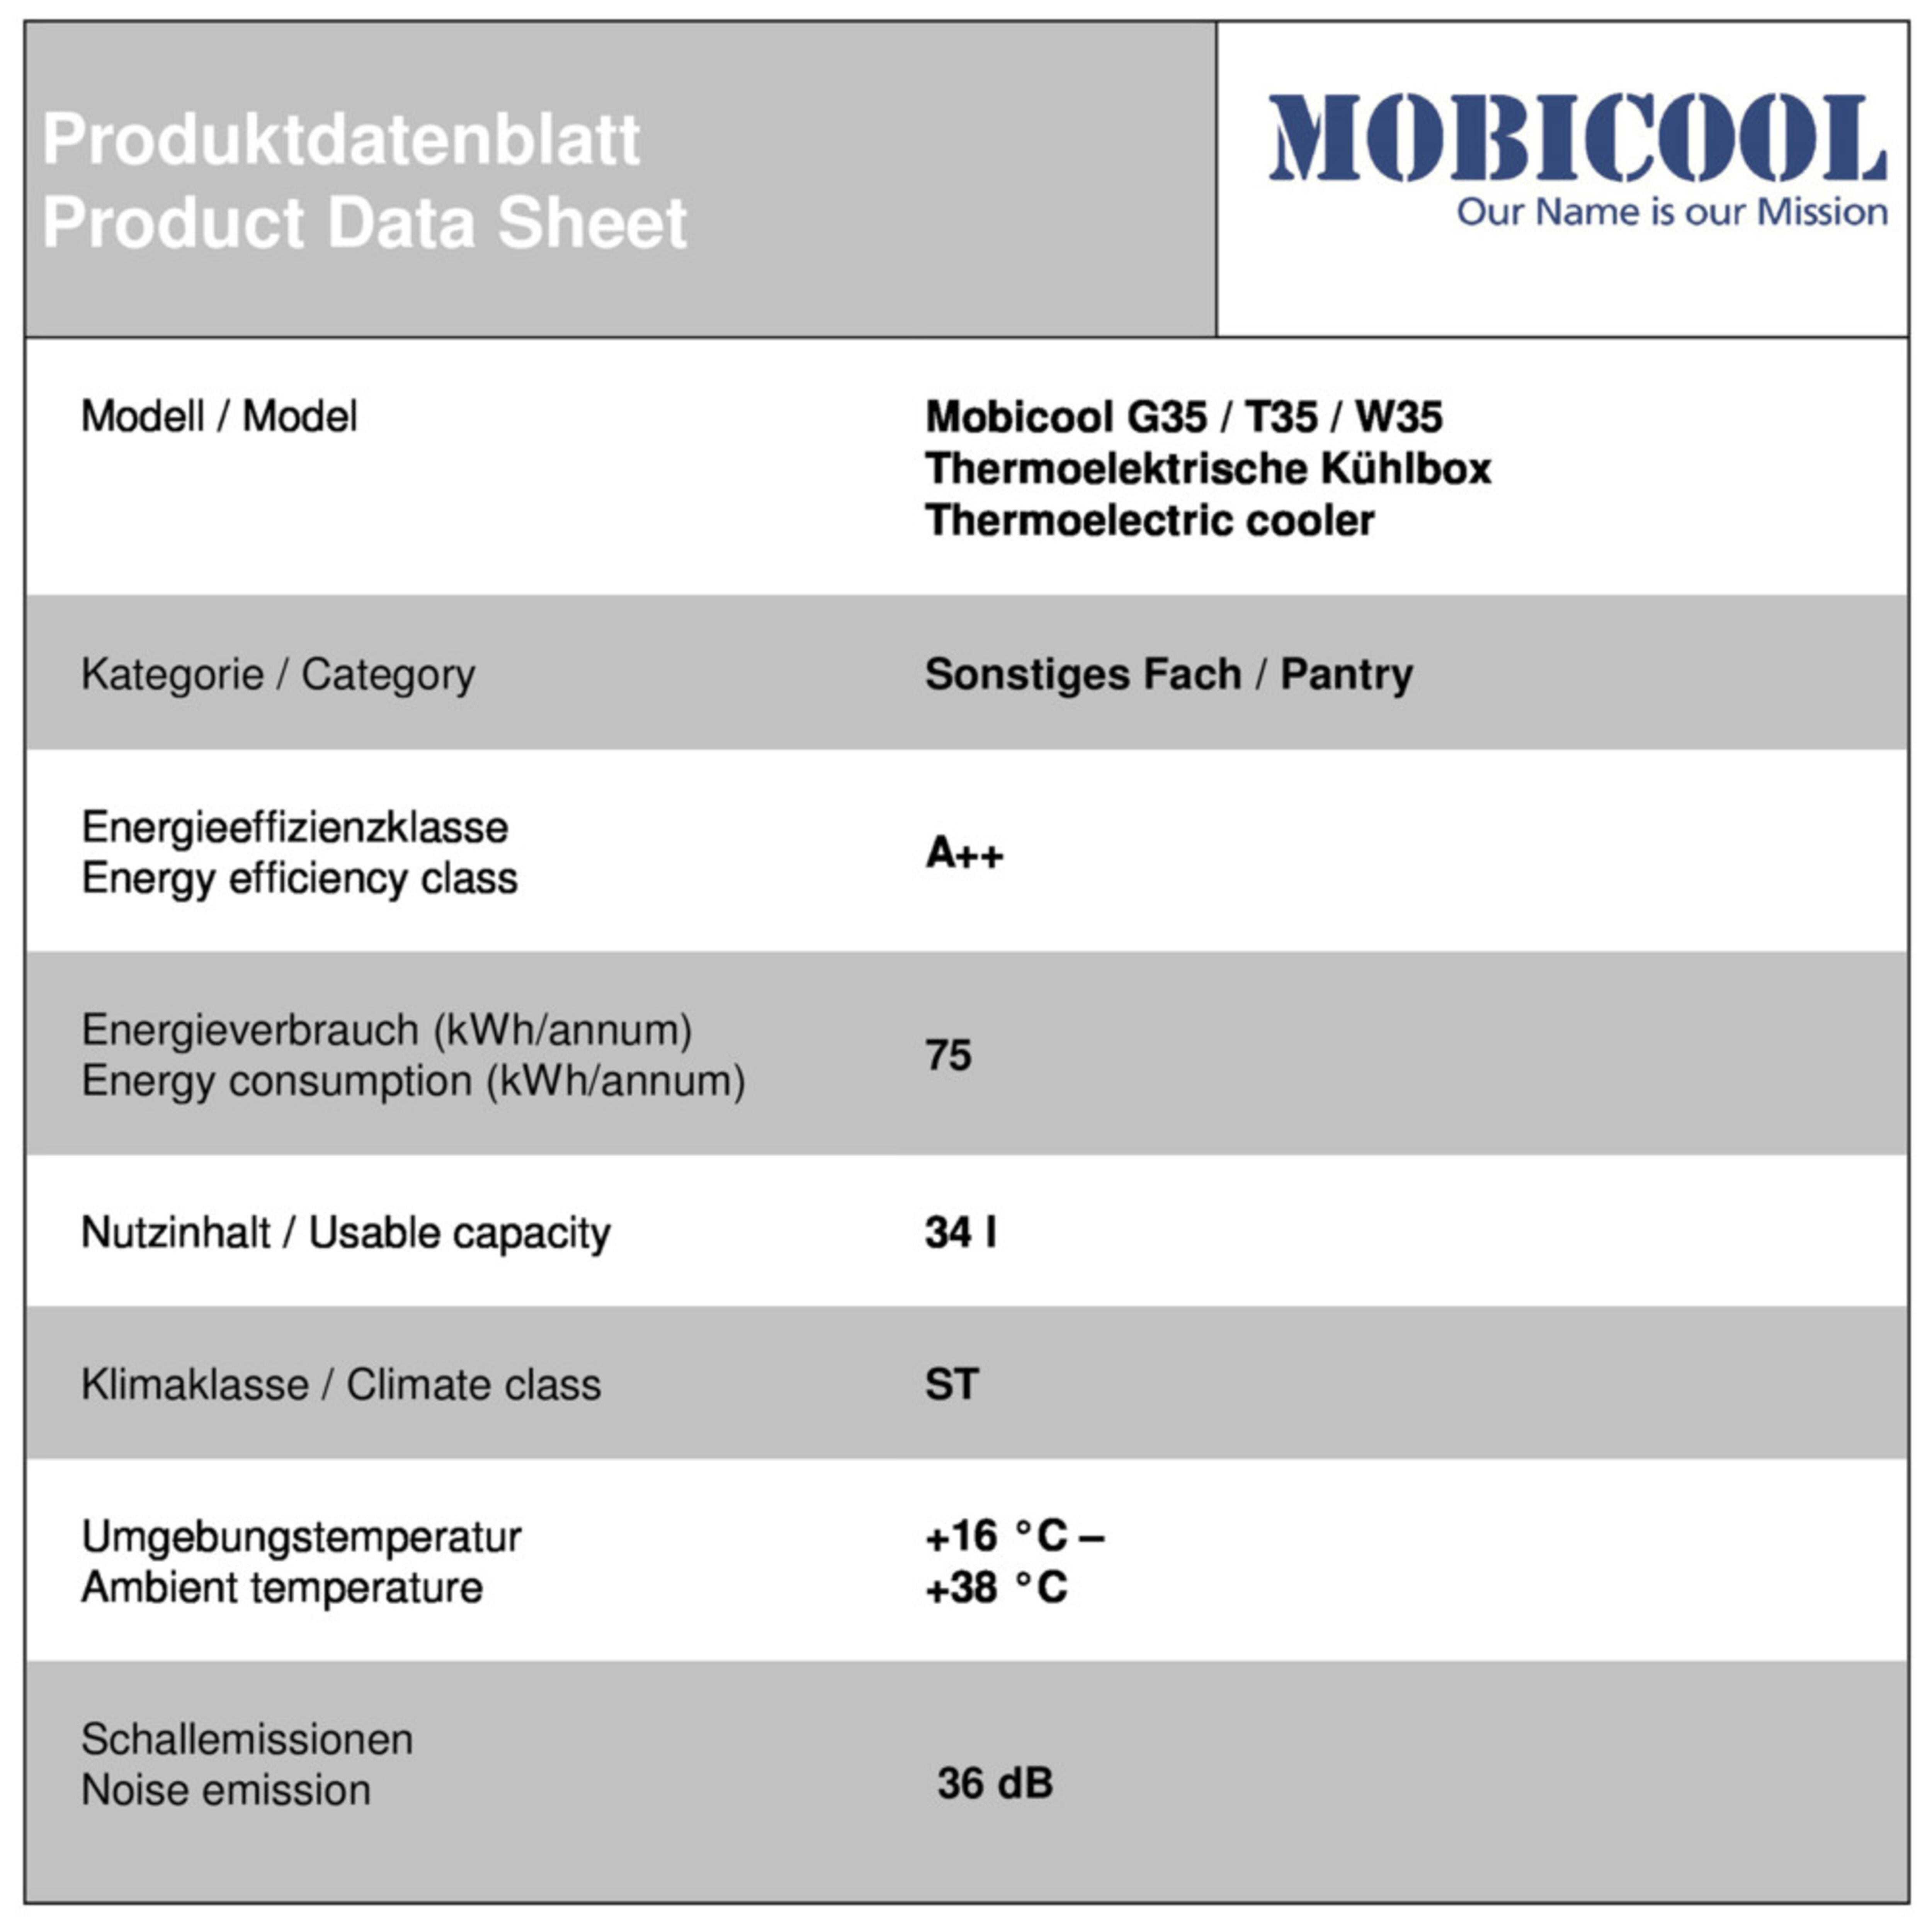 Mobicool G35 Energy data sheet